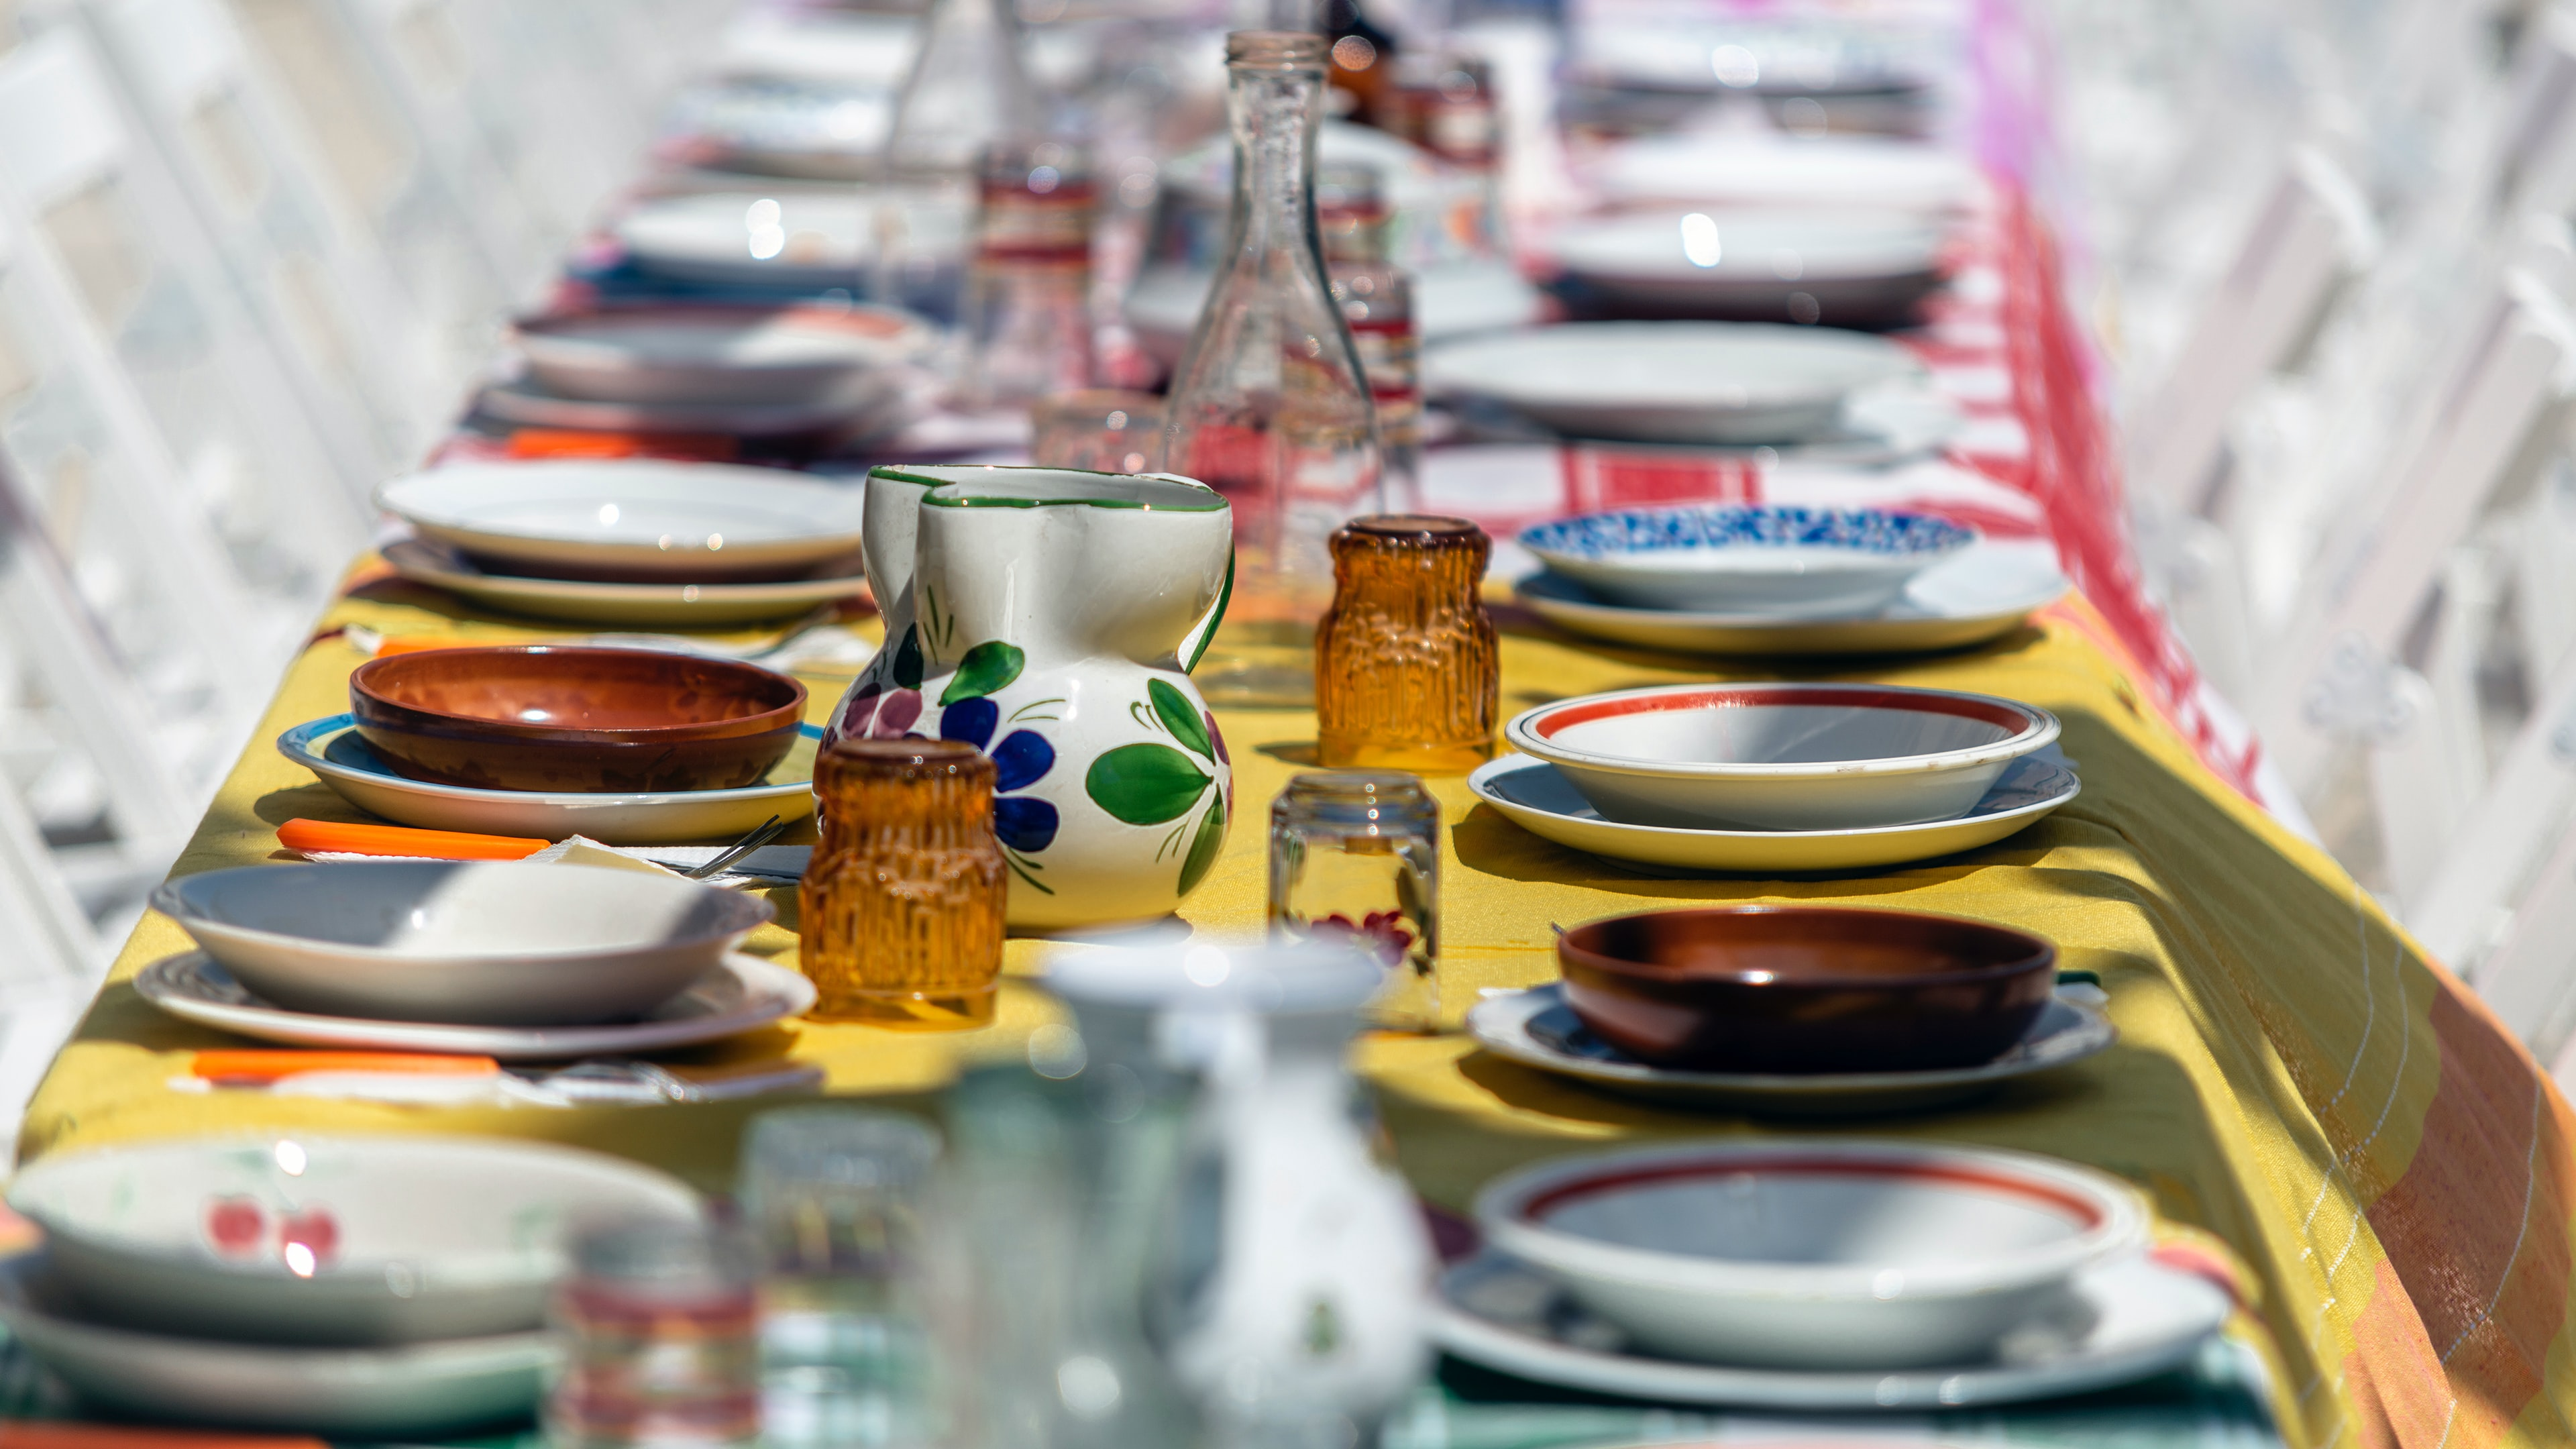 selective focus photography of dinnerware on table